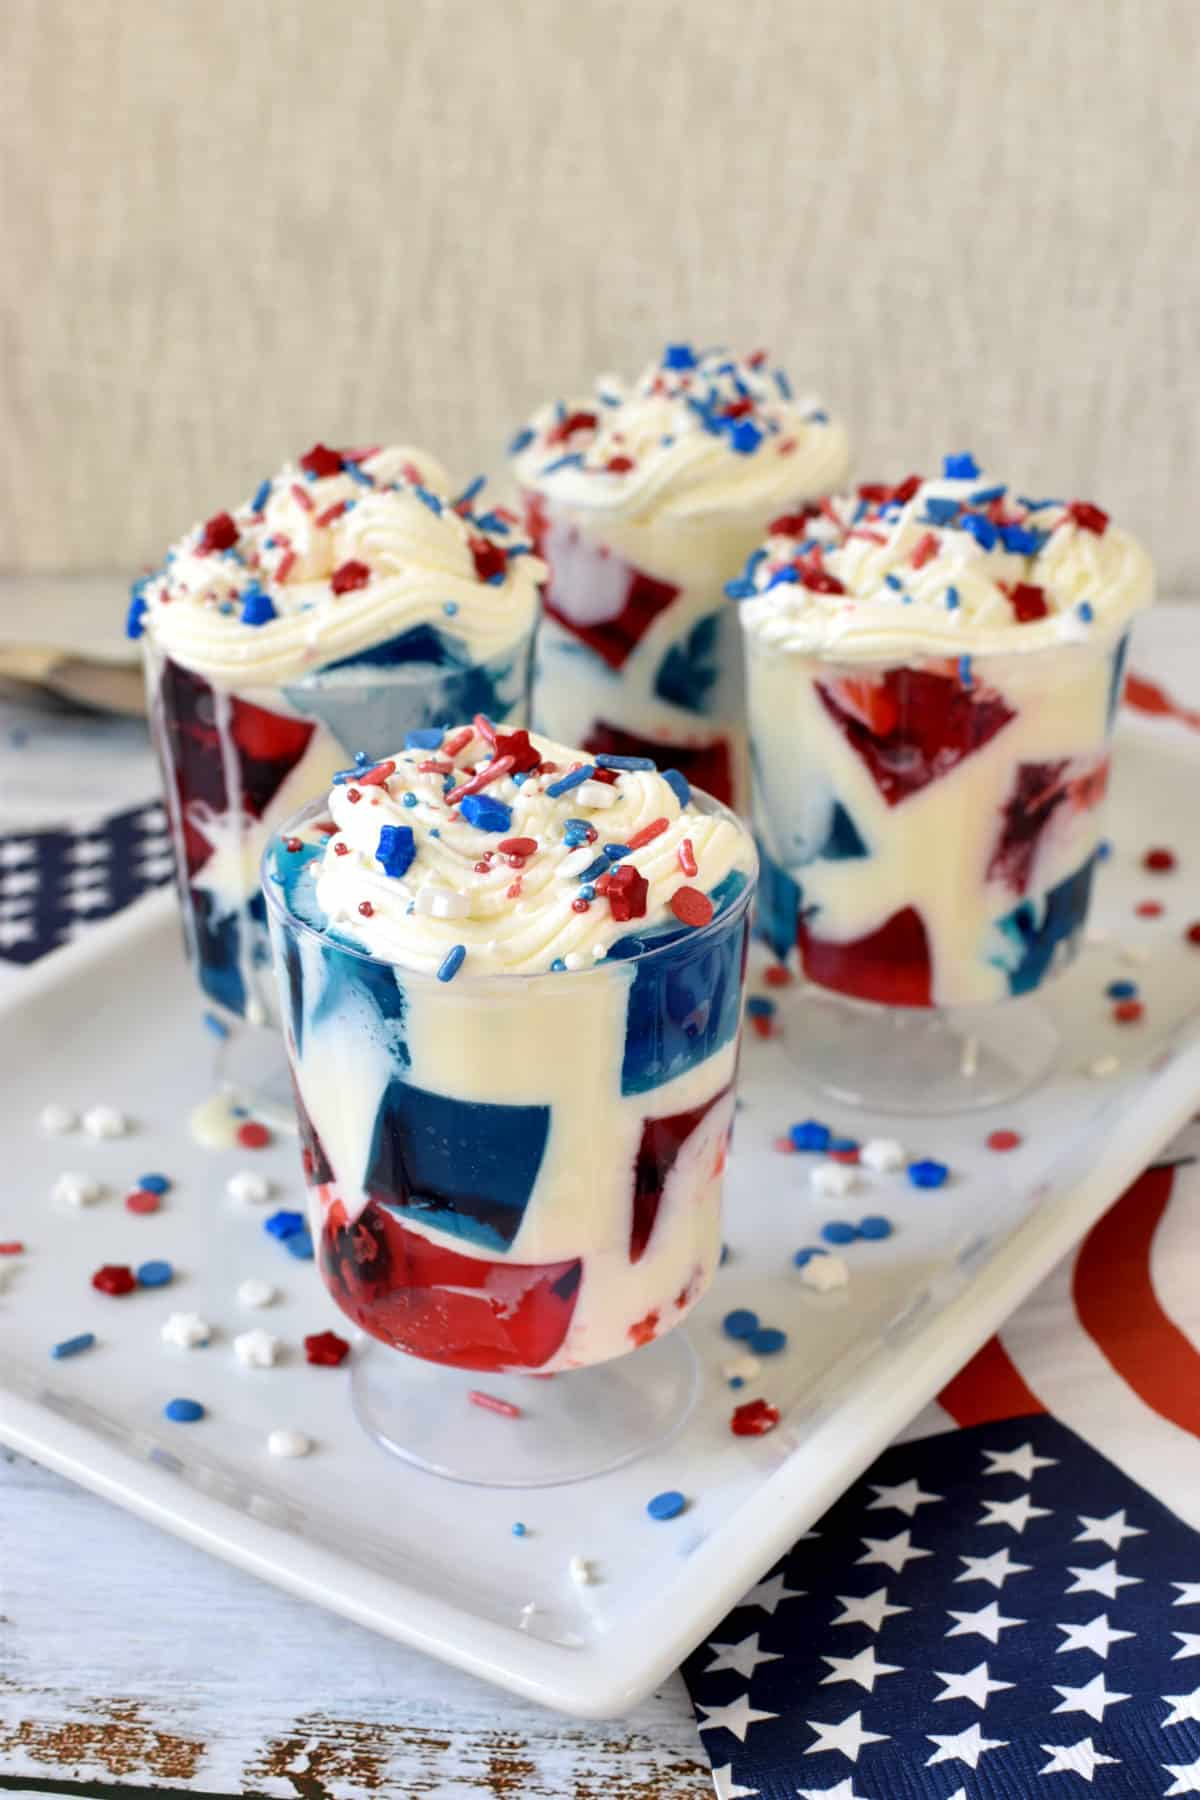 blue and red Jell-O squares in a cups with a white cream and topped with whipped cream and shaped sprinkles